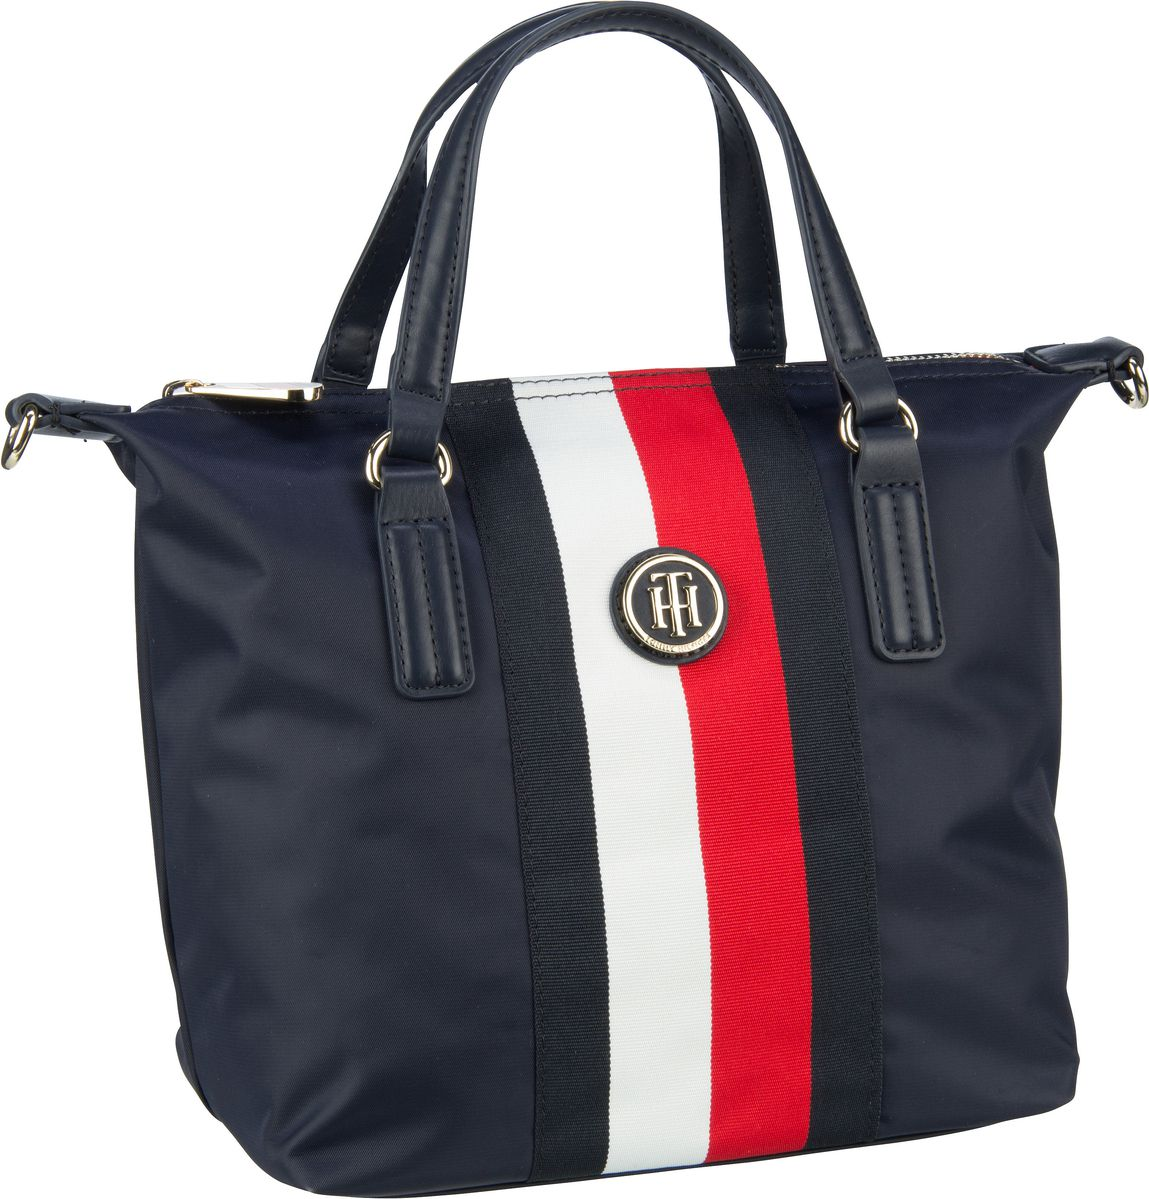 Handtasche Poppy Small Tote STP 6863 Corporate